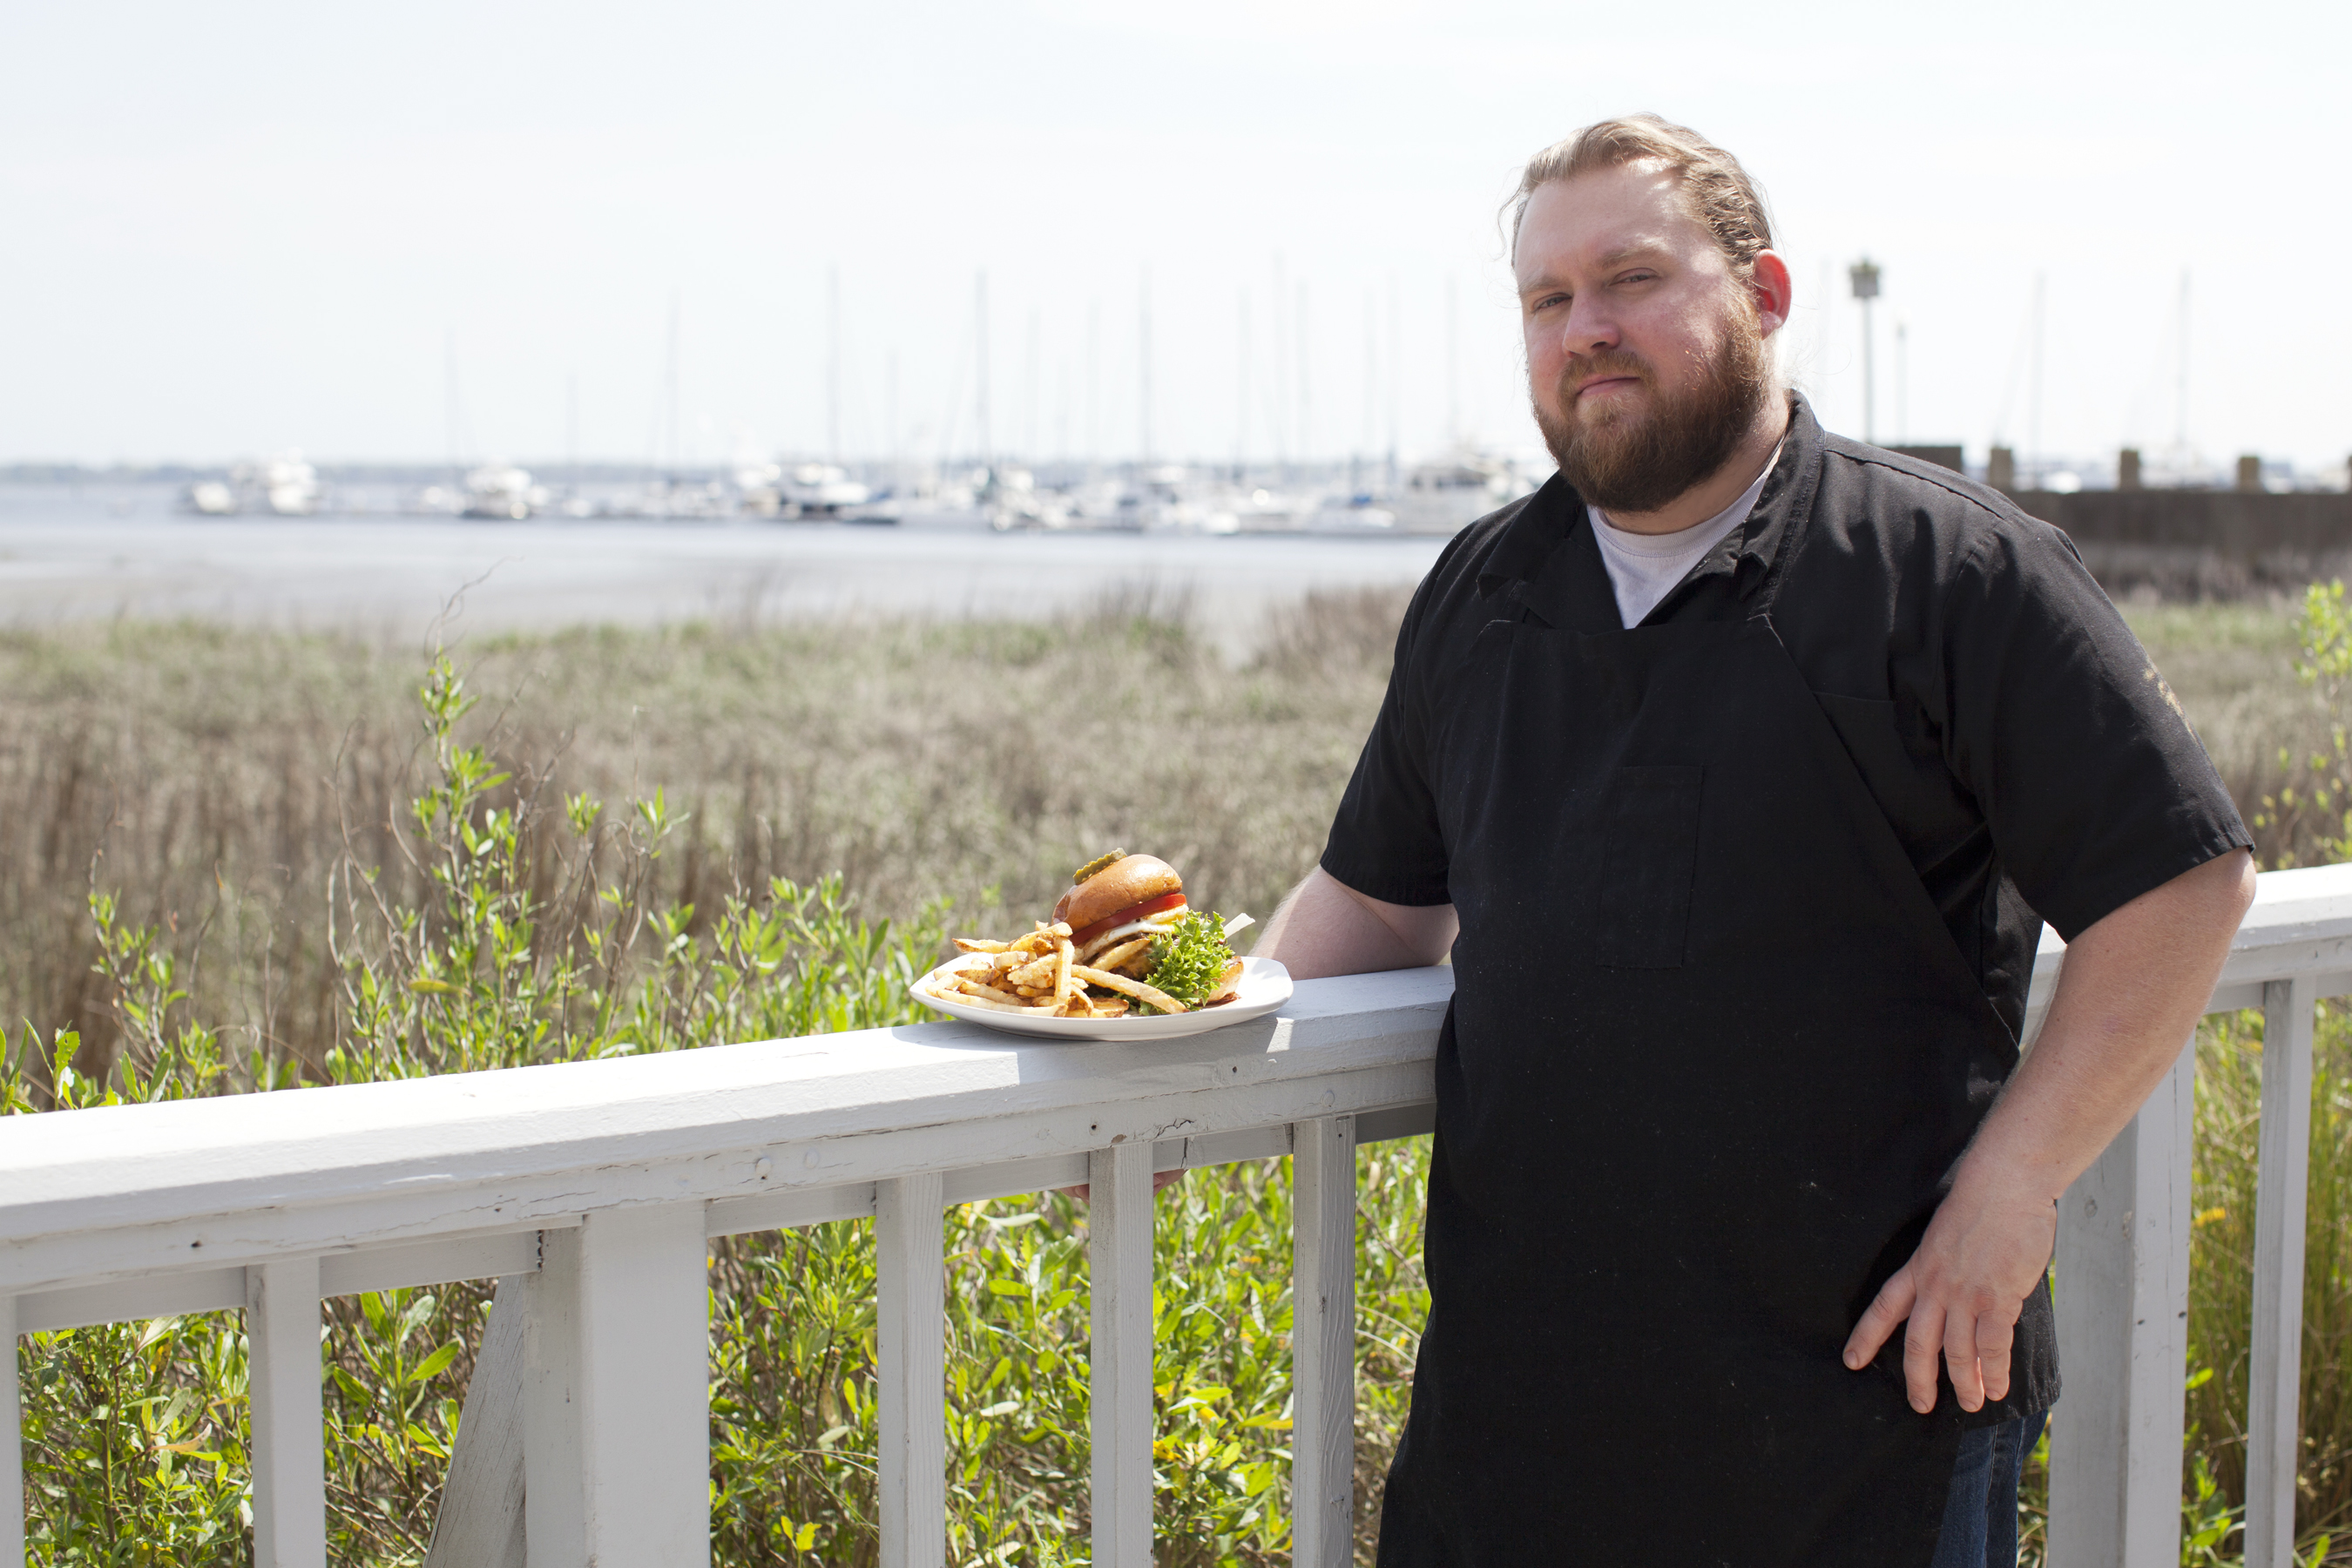 Burgers, boats, and chef Ryan Collins.